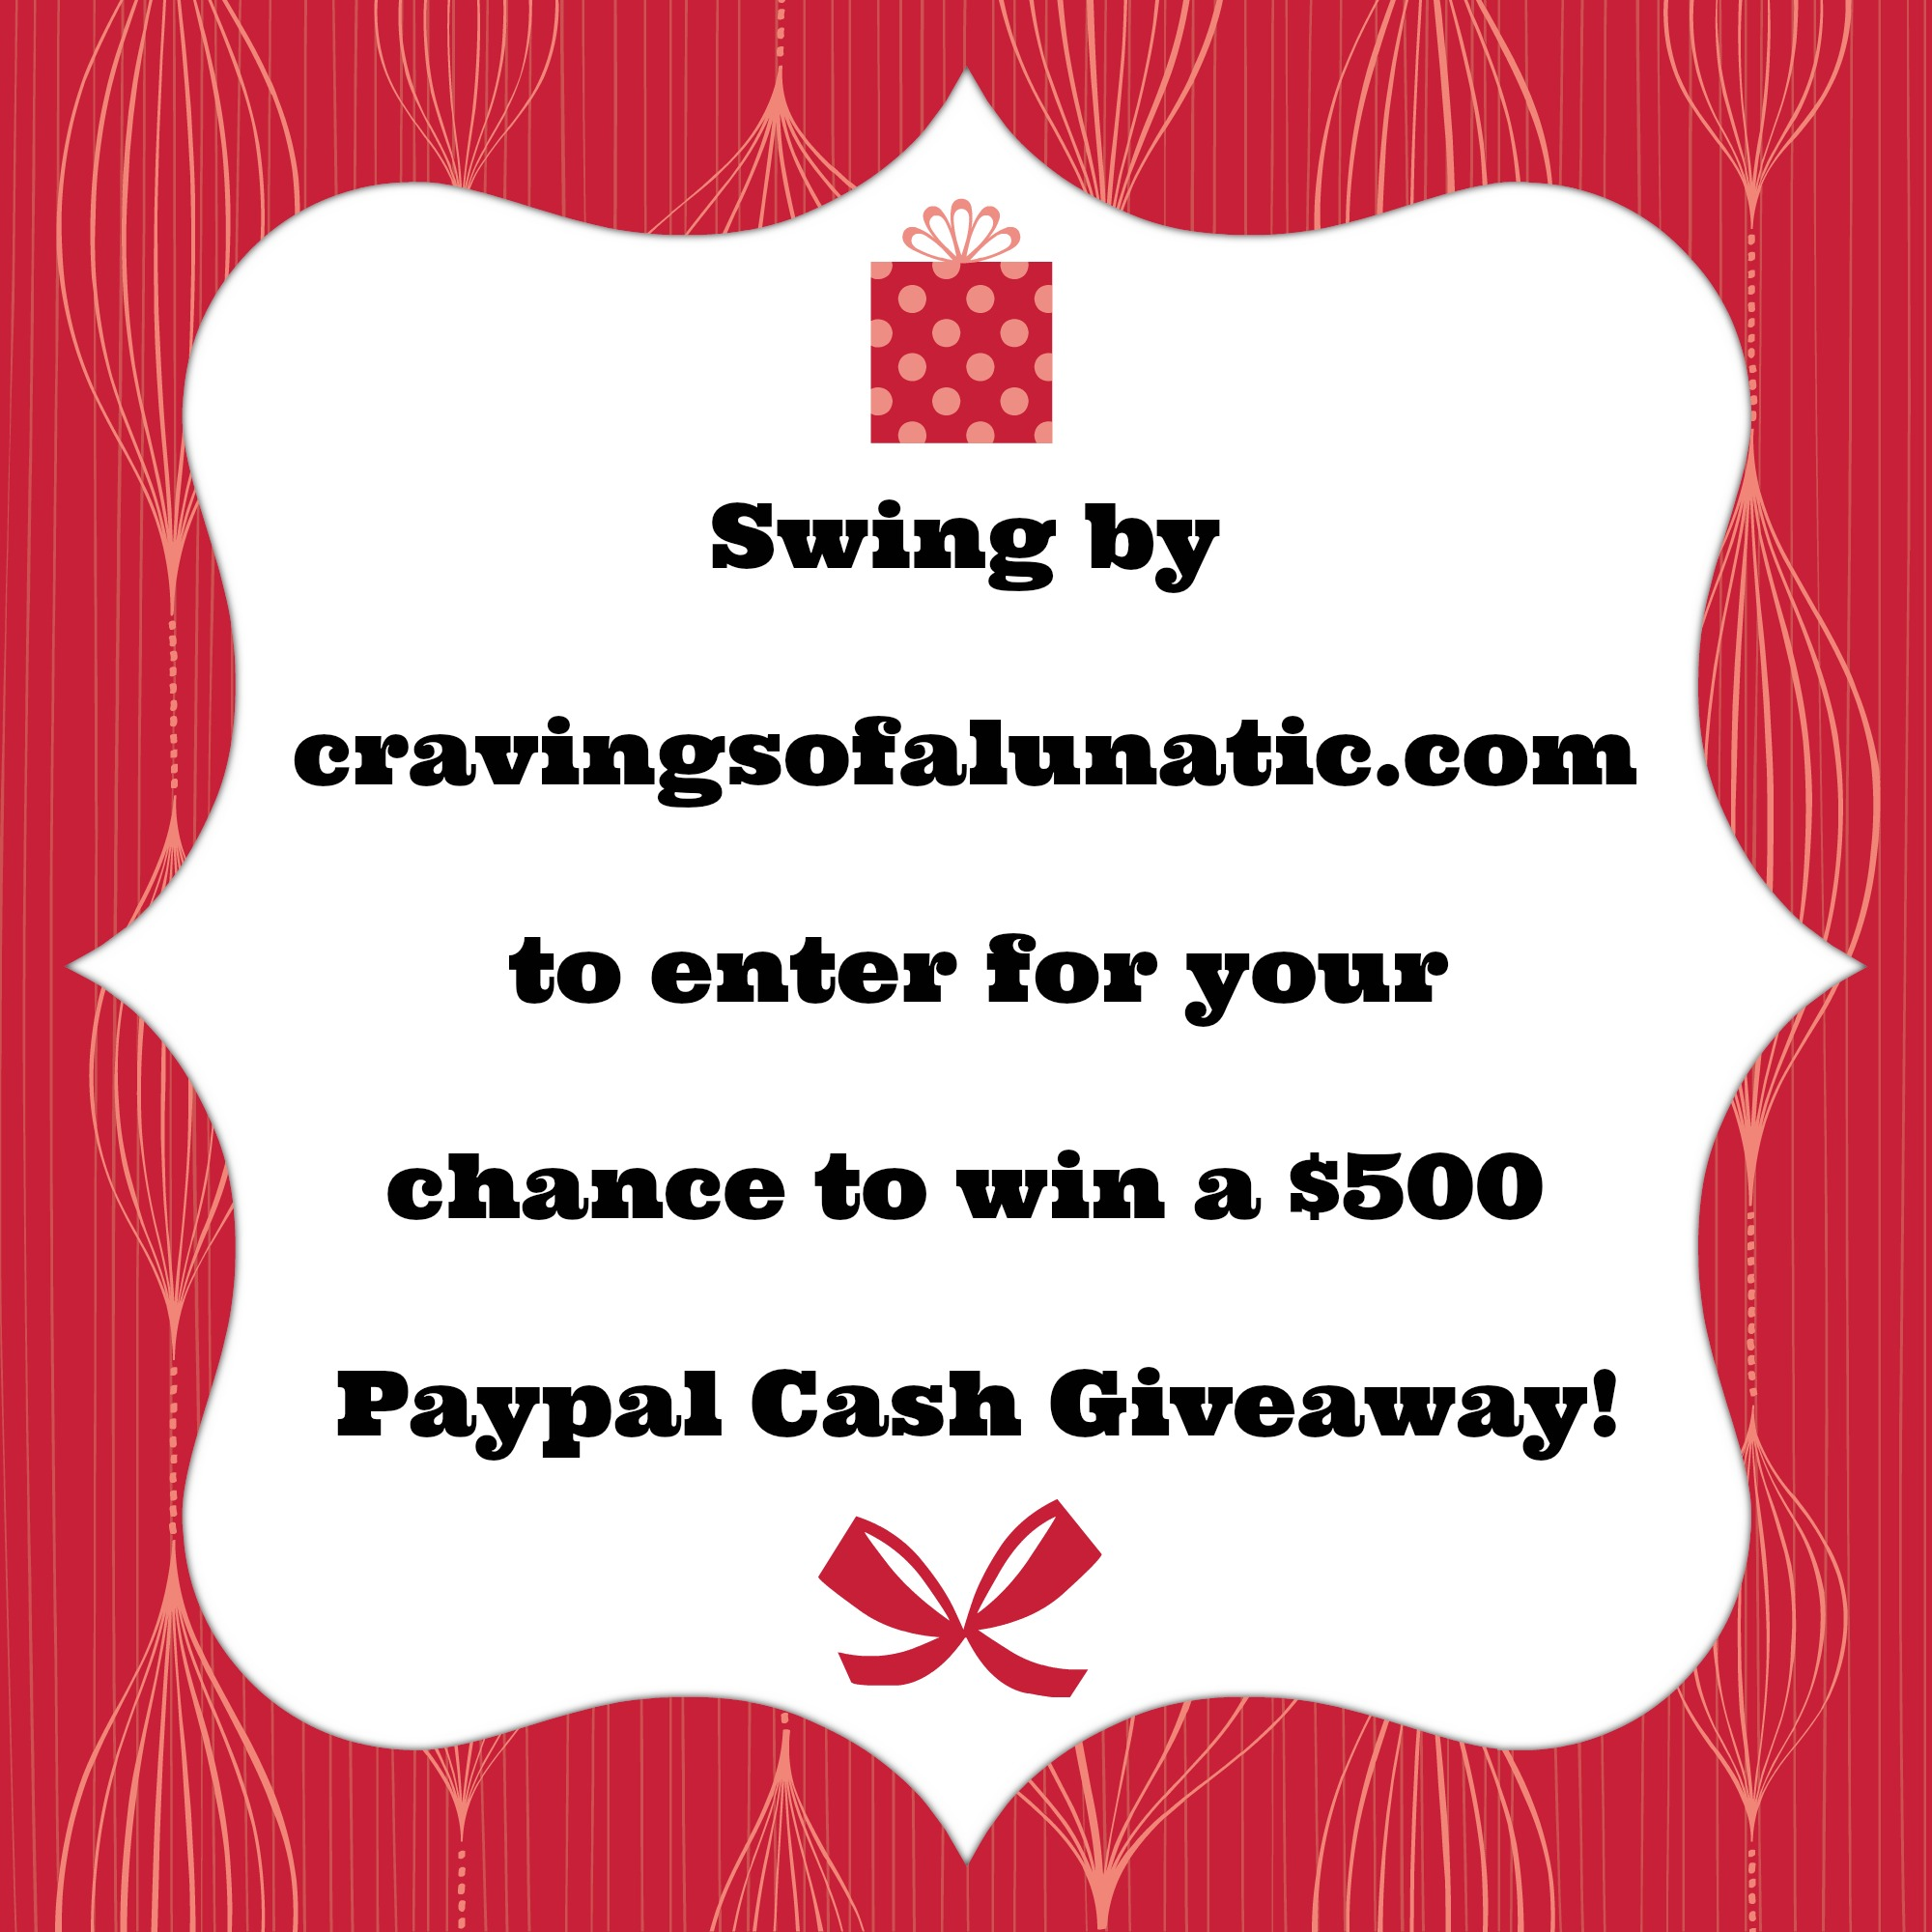 $500 Paypal Cash Giveaway on cravingsofalunatic.com- swing by to enter!!! (@CravingsLunatic)